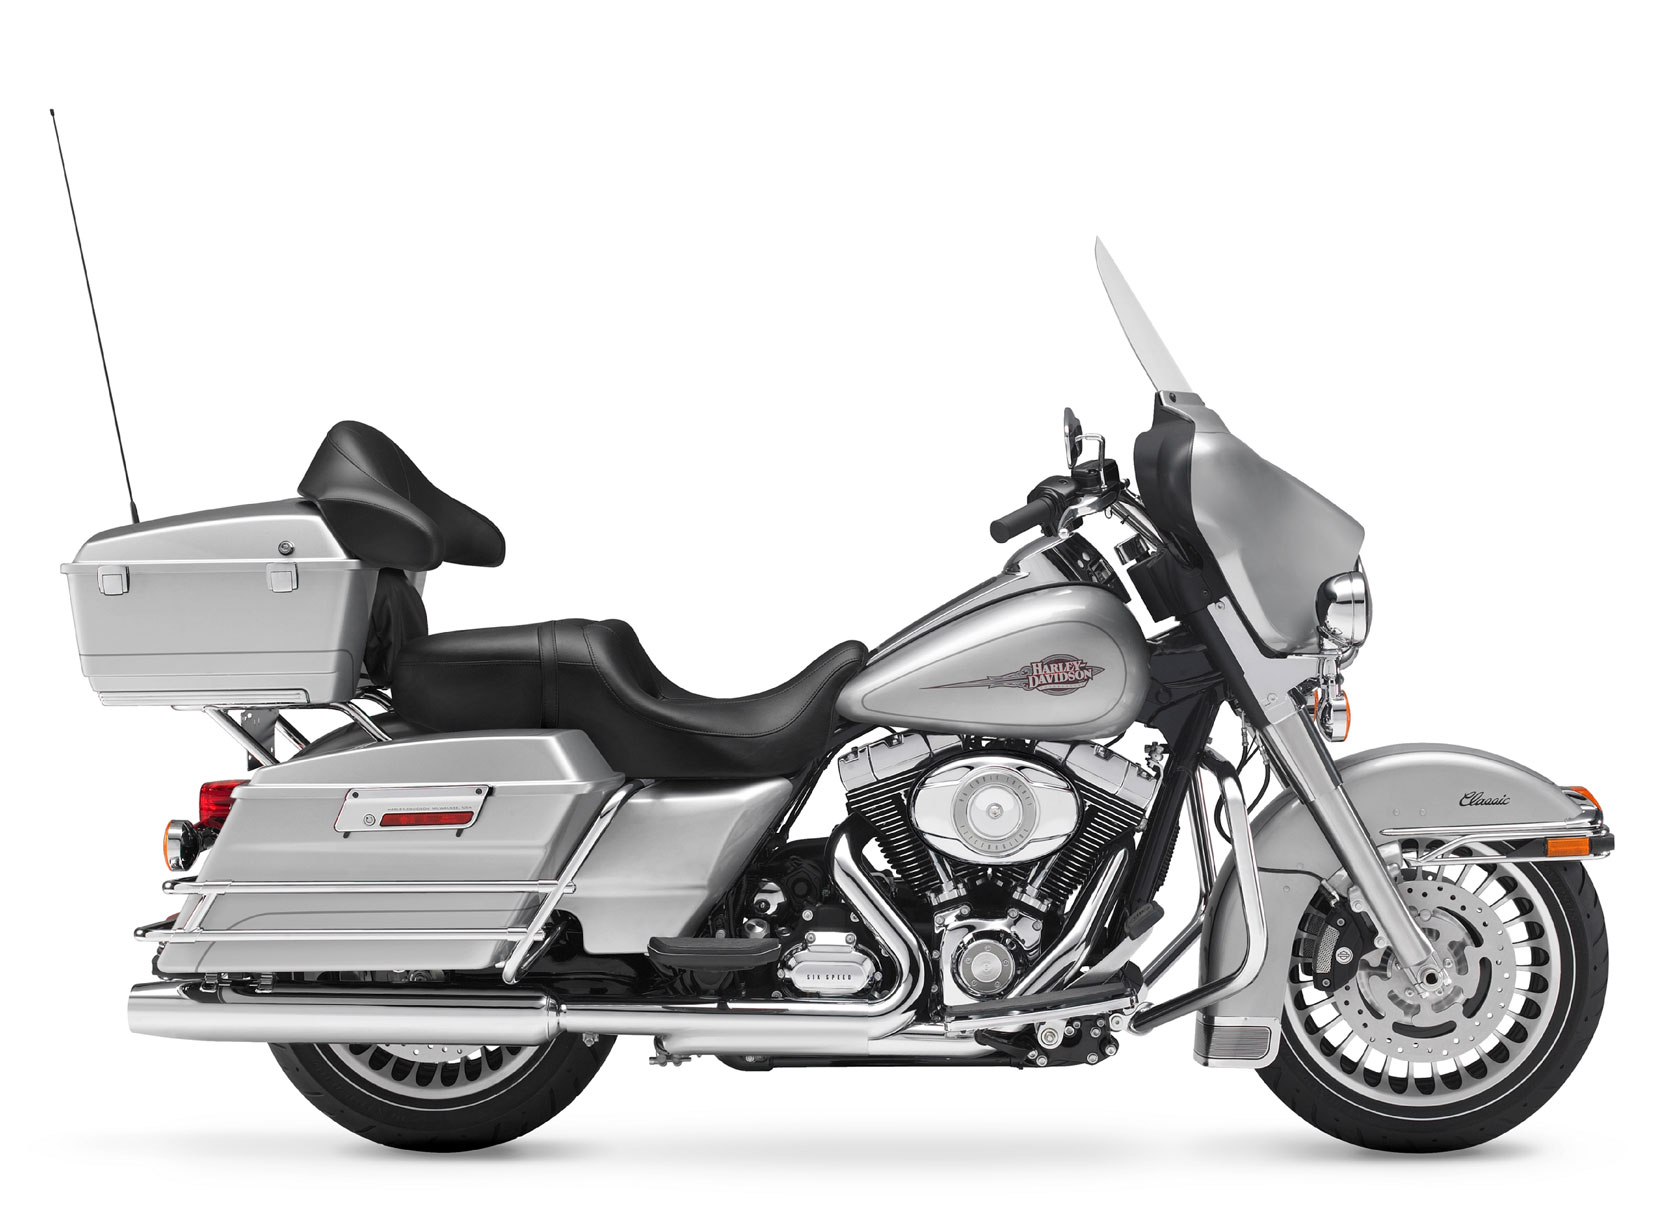 Harley-Davidson FLHTC Electra Glide Classic 2011 #1